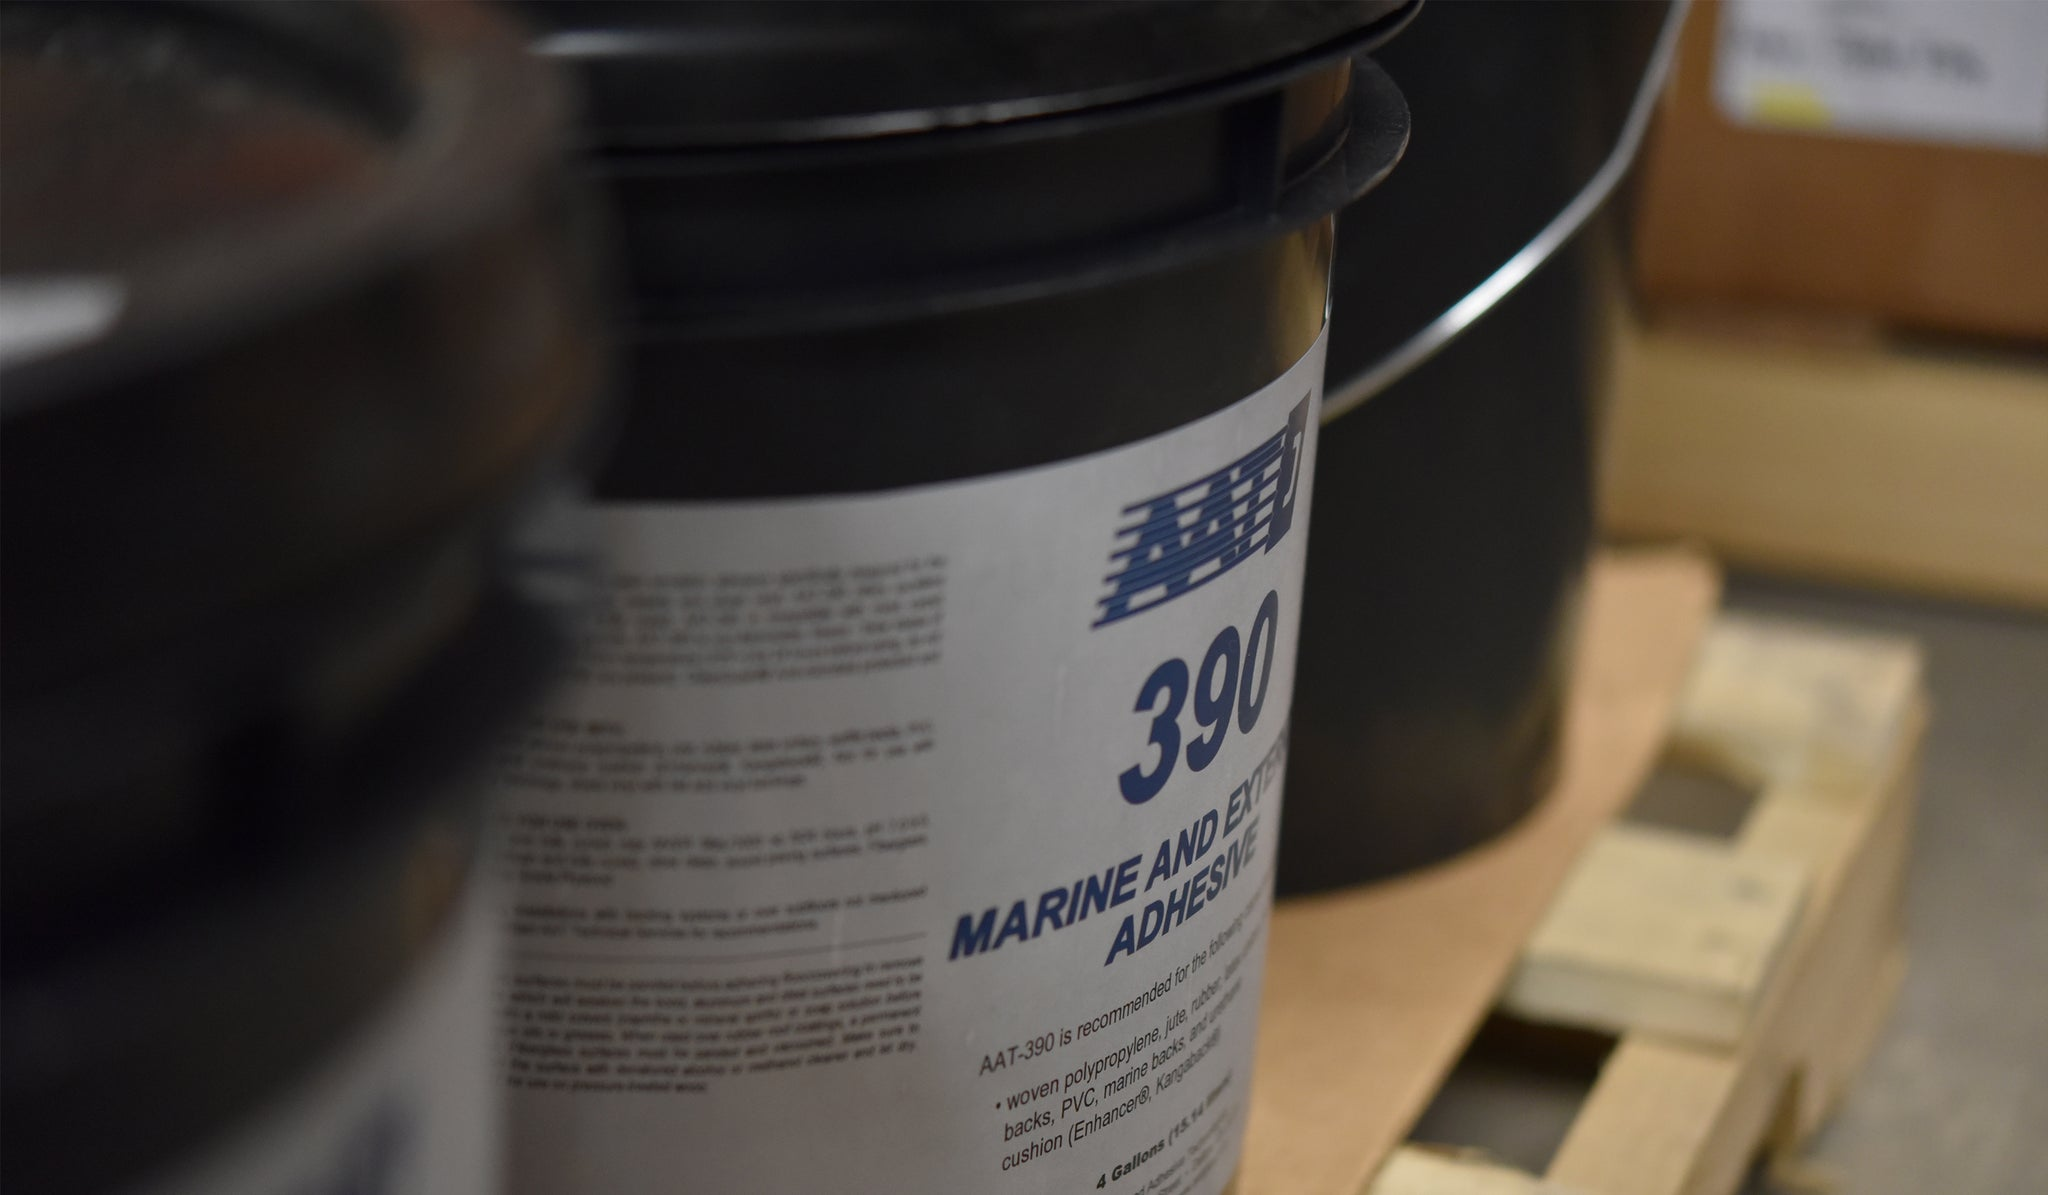 Recreational (Marine and RV) Flooring Adhesive Specification